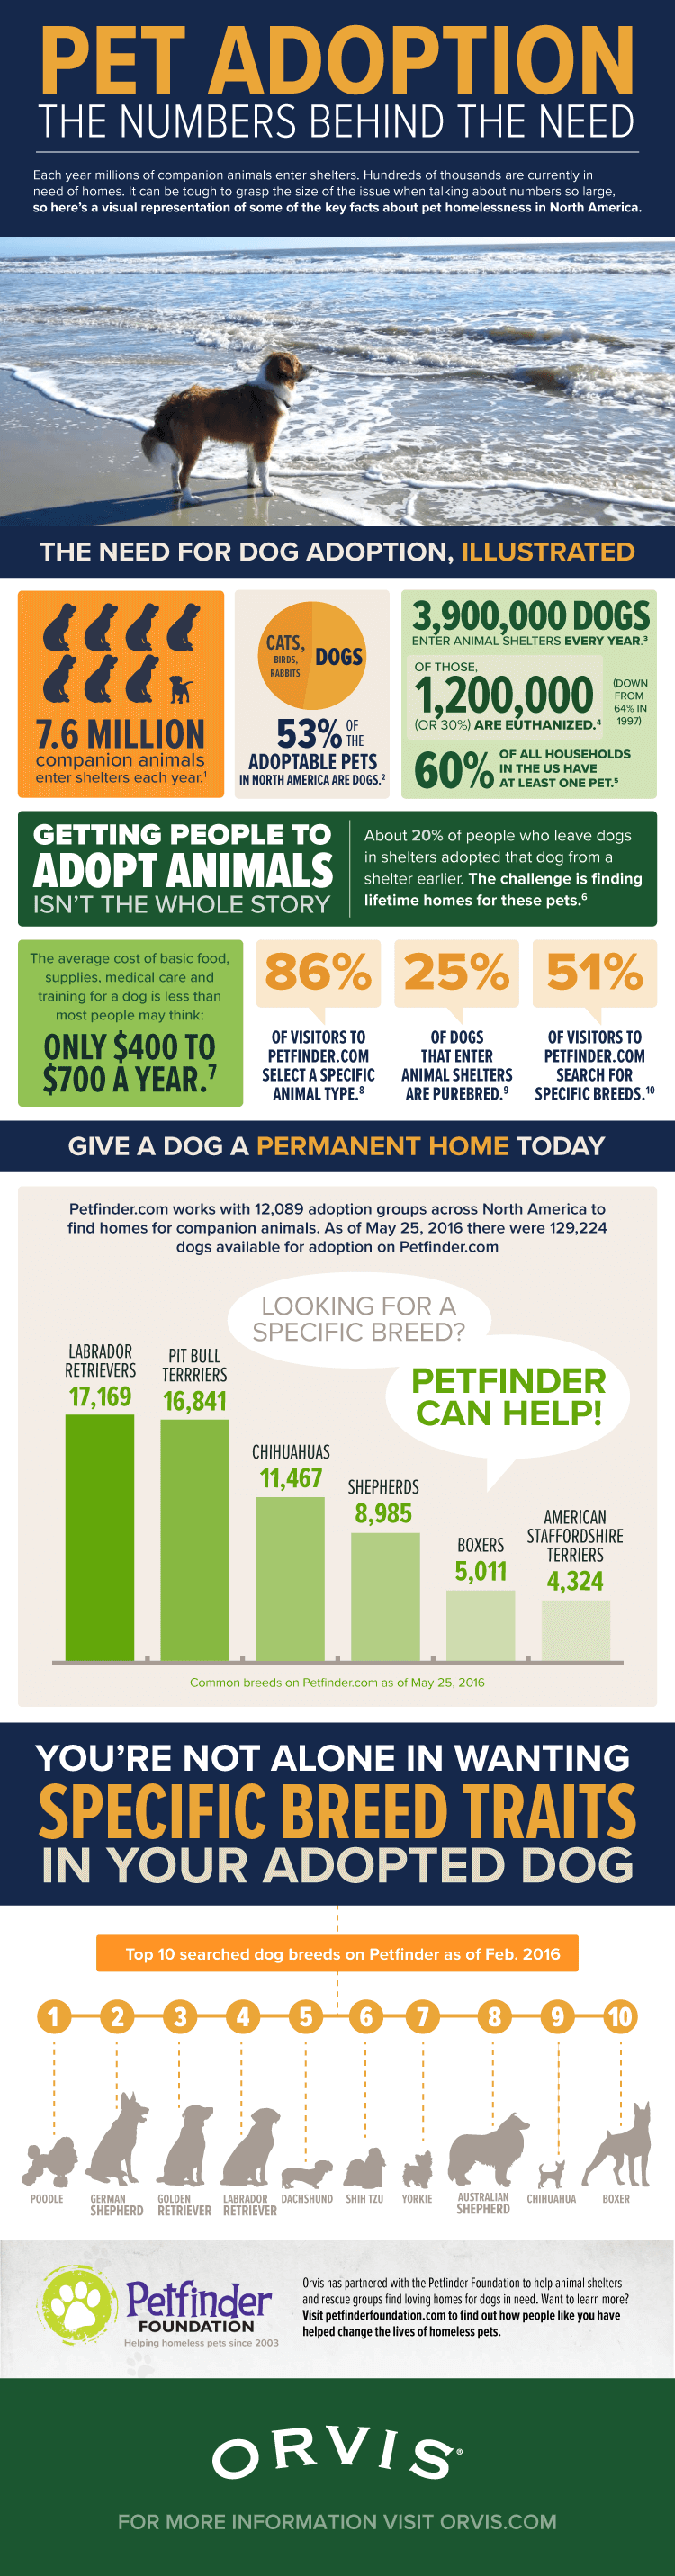 Pet Adoption The Numbers Behind the Need – Infographic Portal